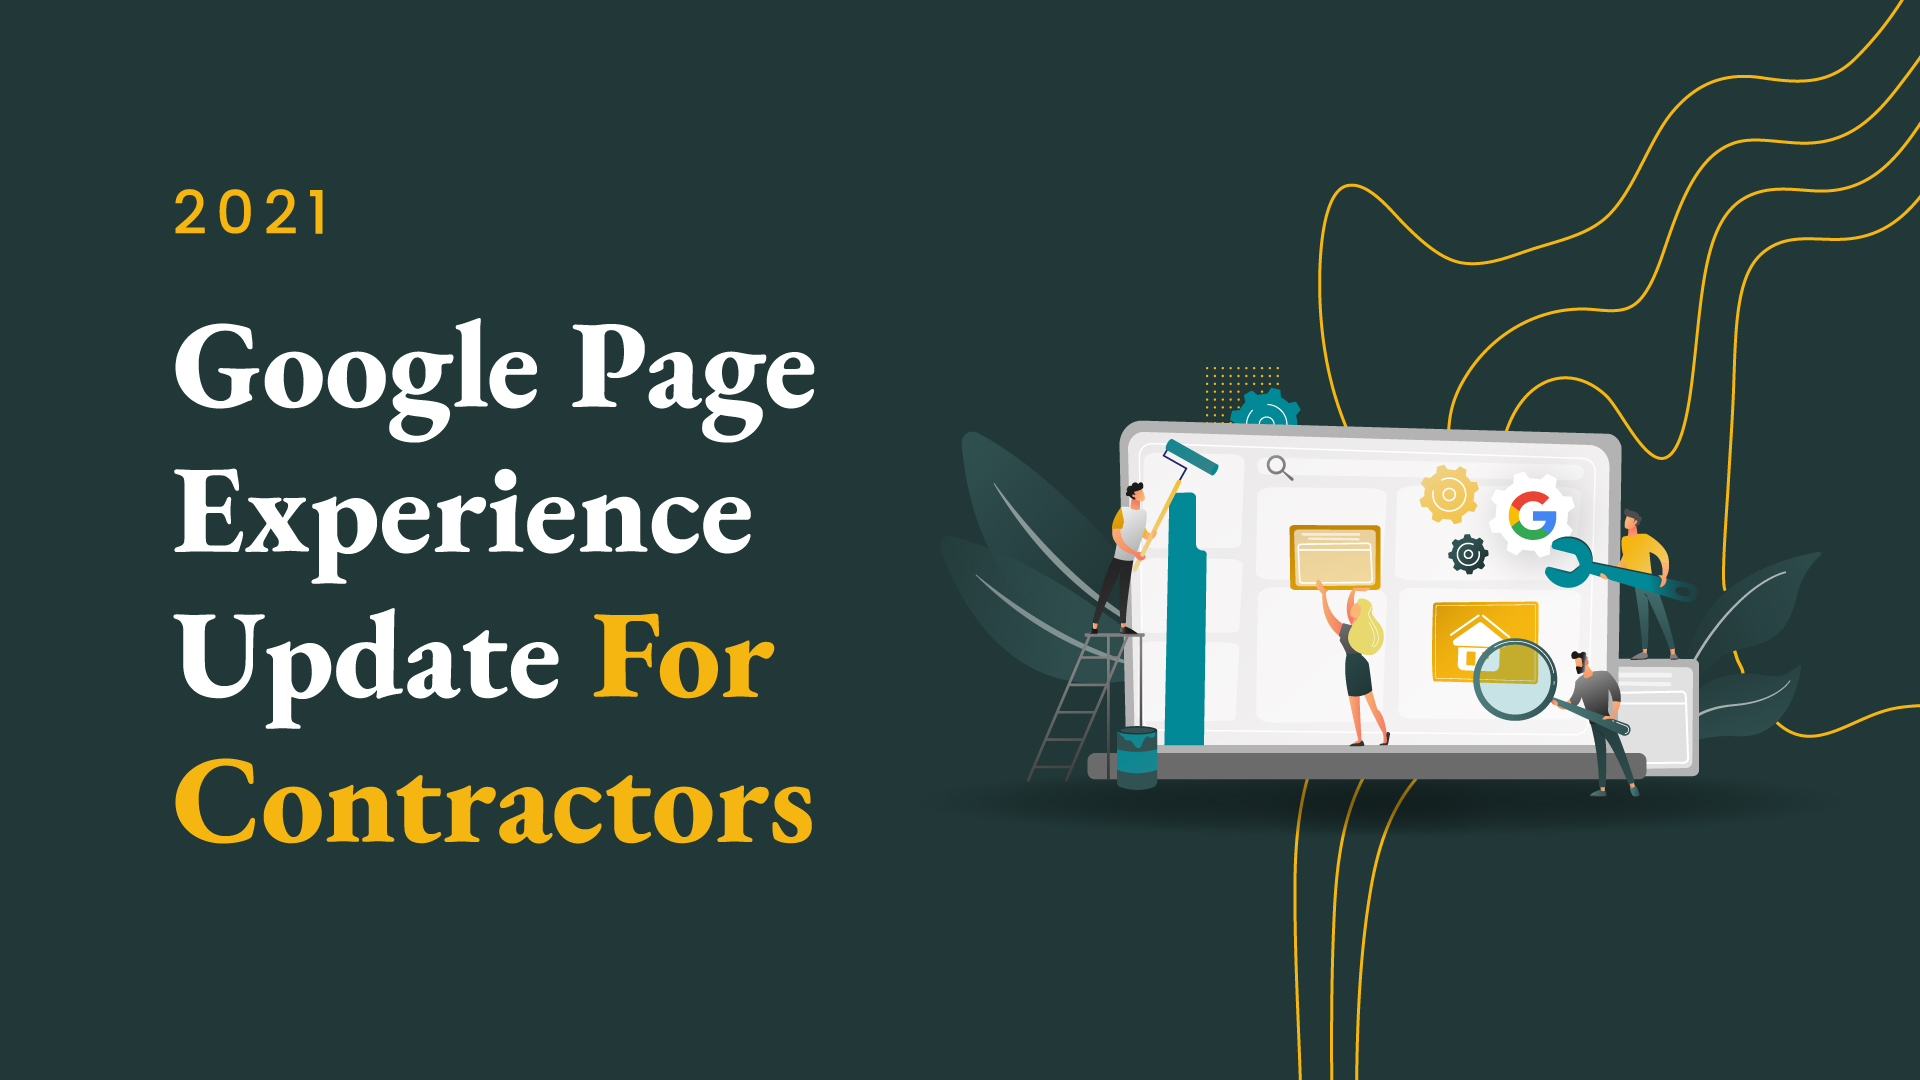 Google Page Experience Update for Contractors 2021